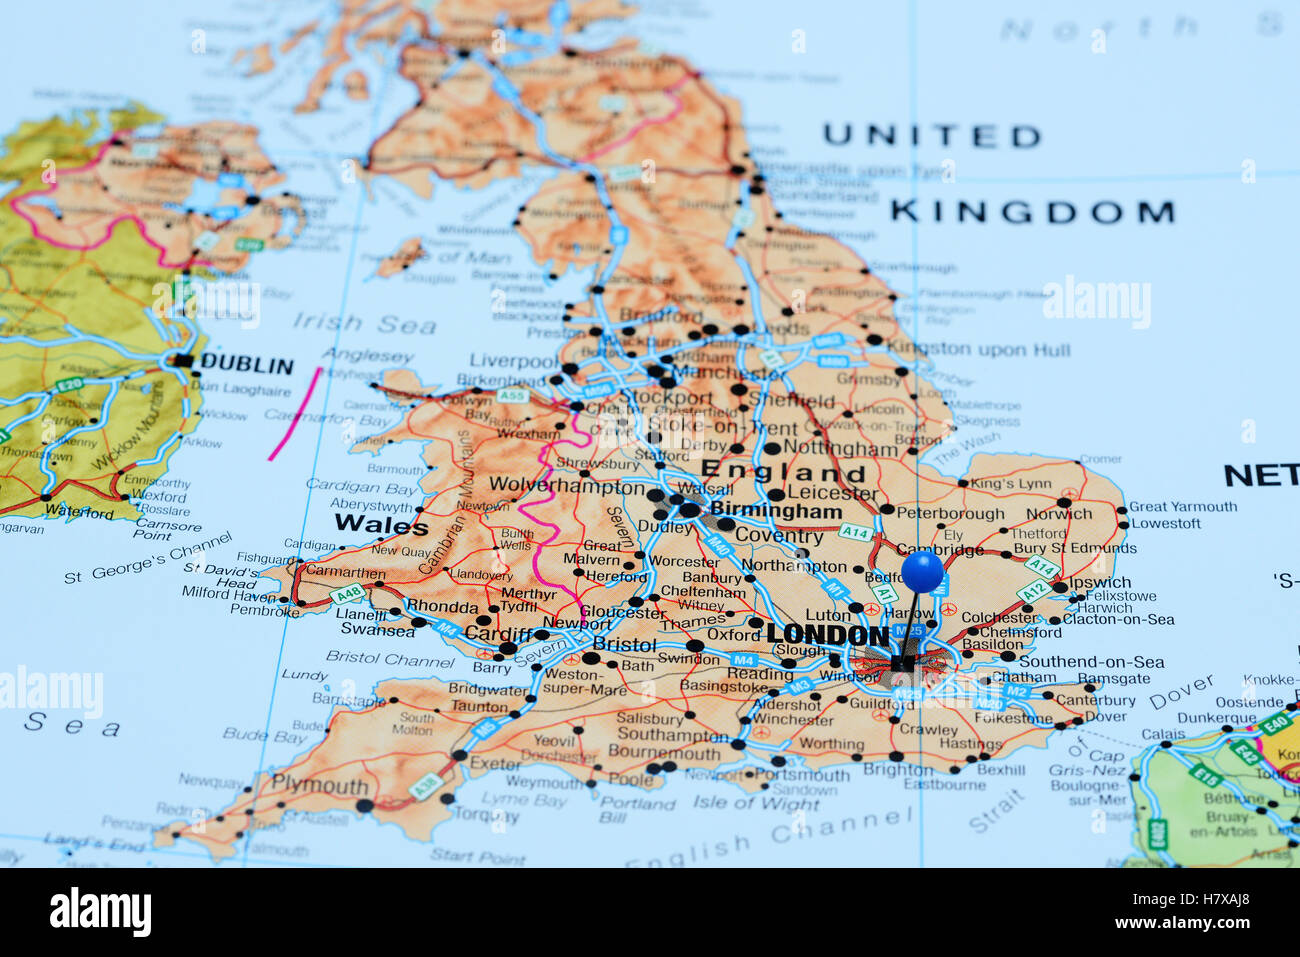 London On The Map London pinned on a map of UK Stock Photo: 125354272   Alamy